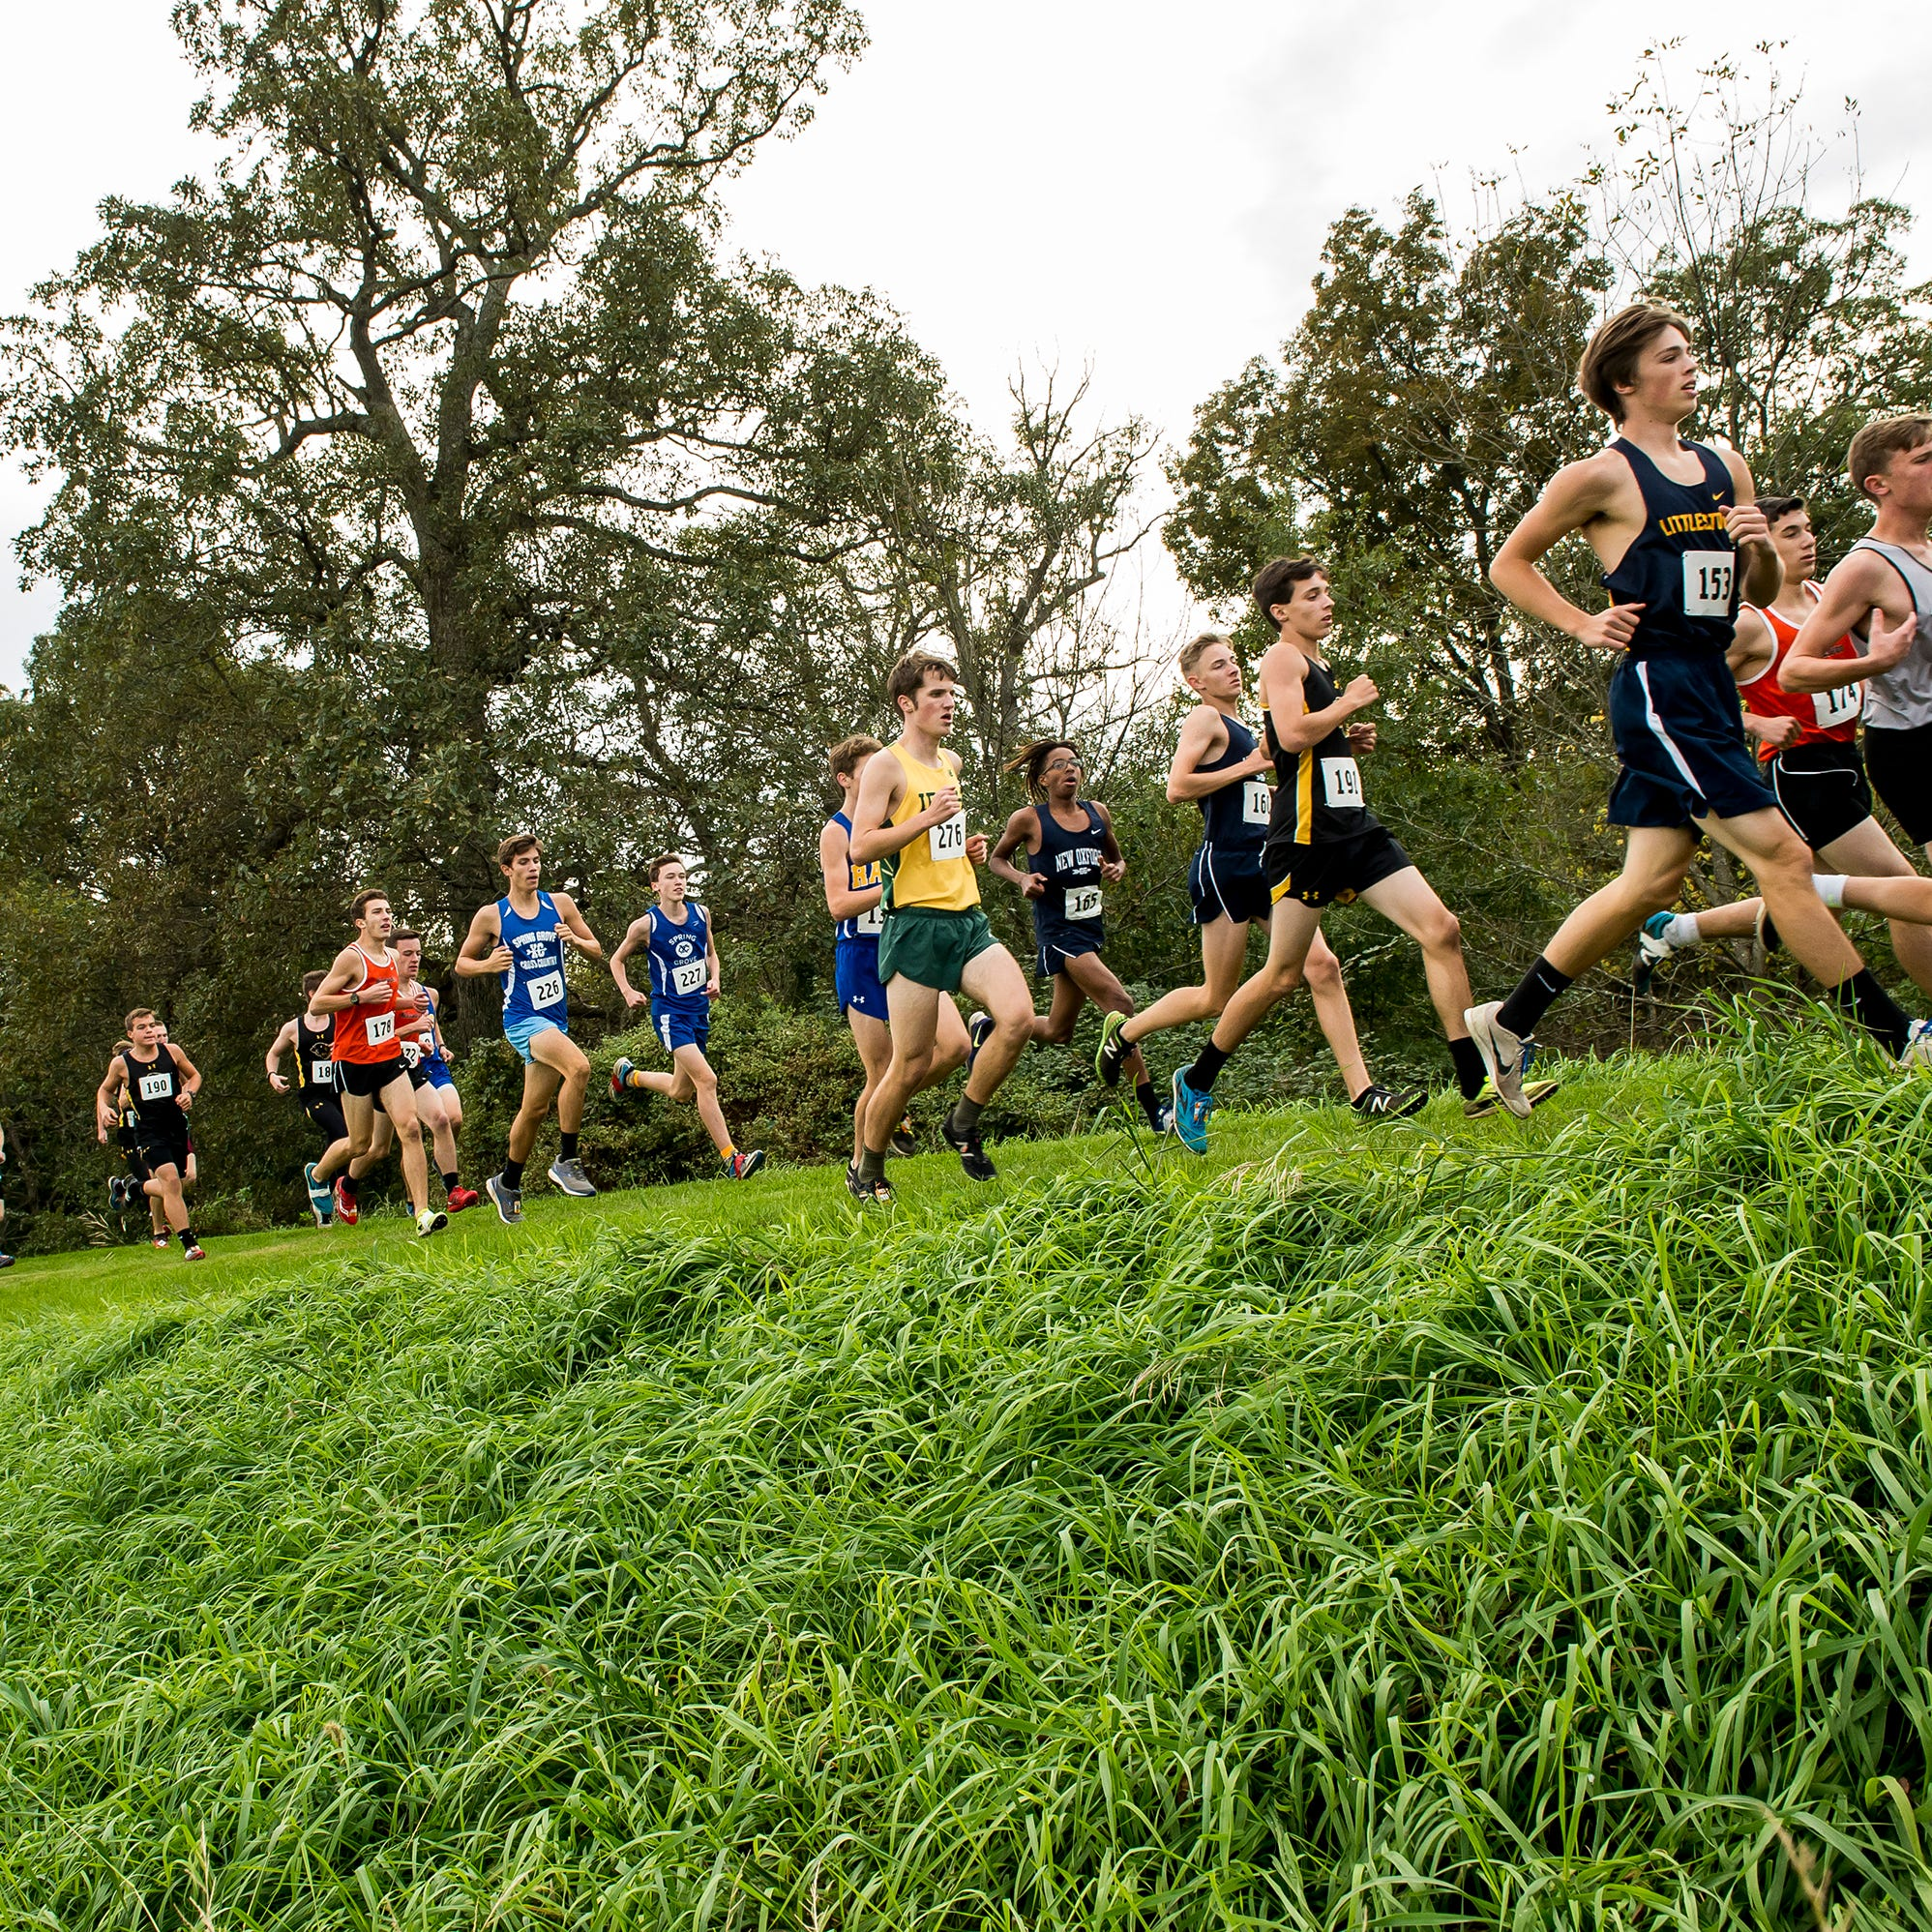 Emily Schuler, Andrew Hirneisen take crowns in YAIAA cross country